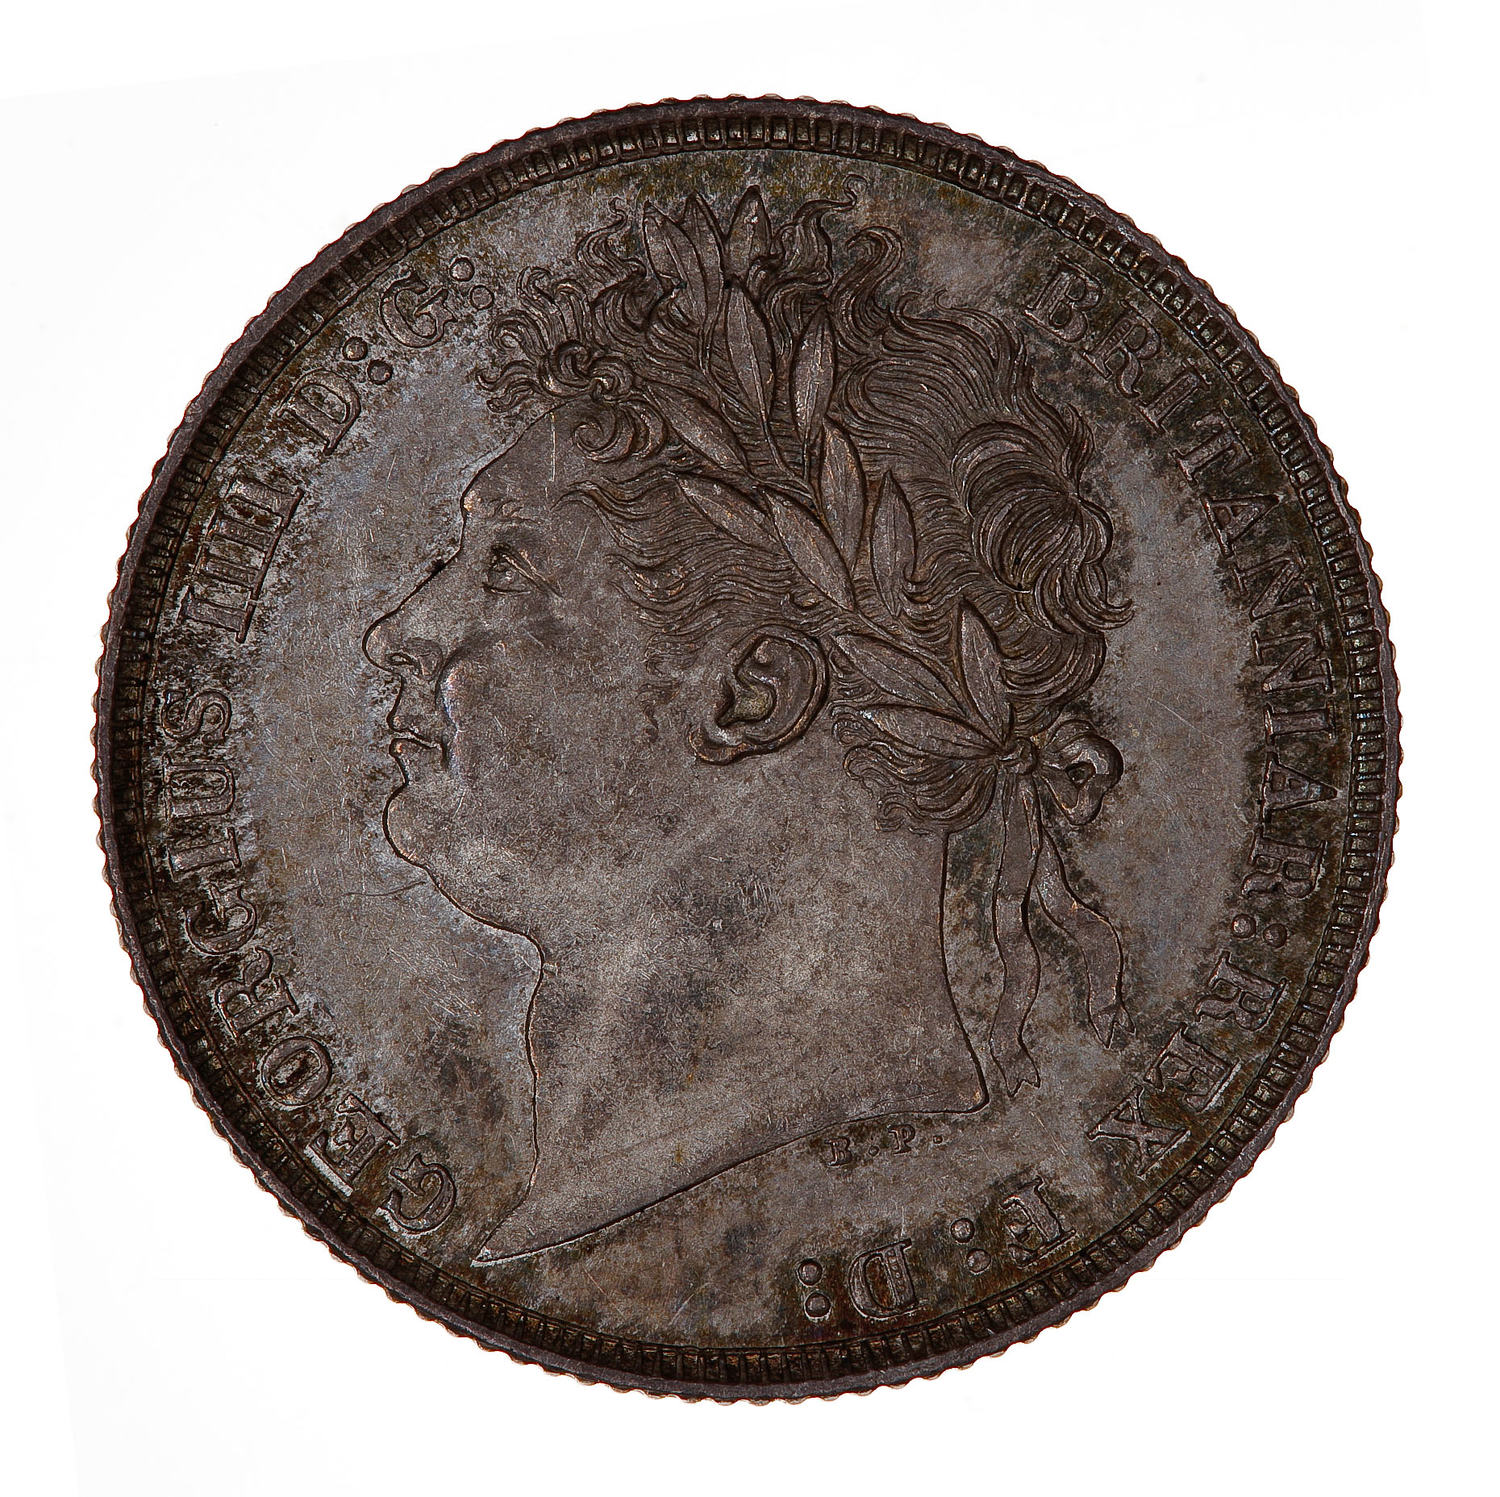 Shilling George IV First Issue: Photo Coin - Shilling, George IV, Great Britain, 1821